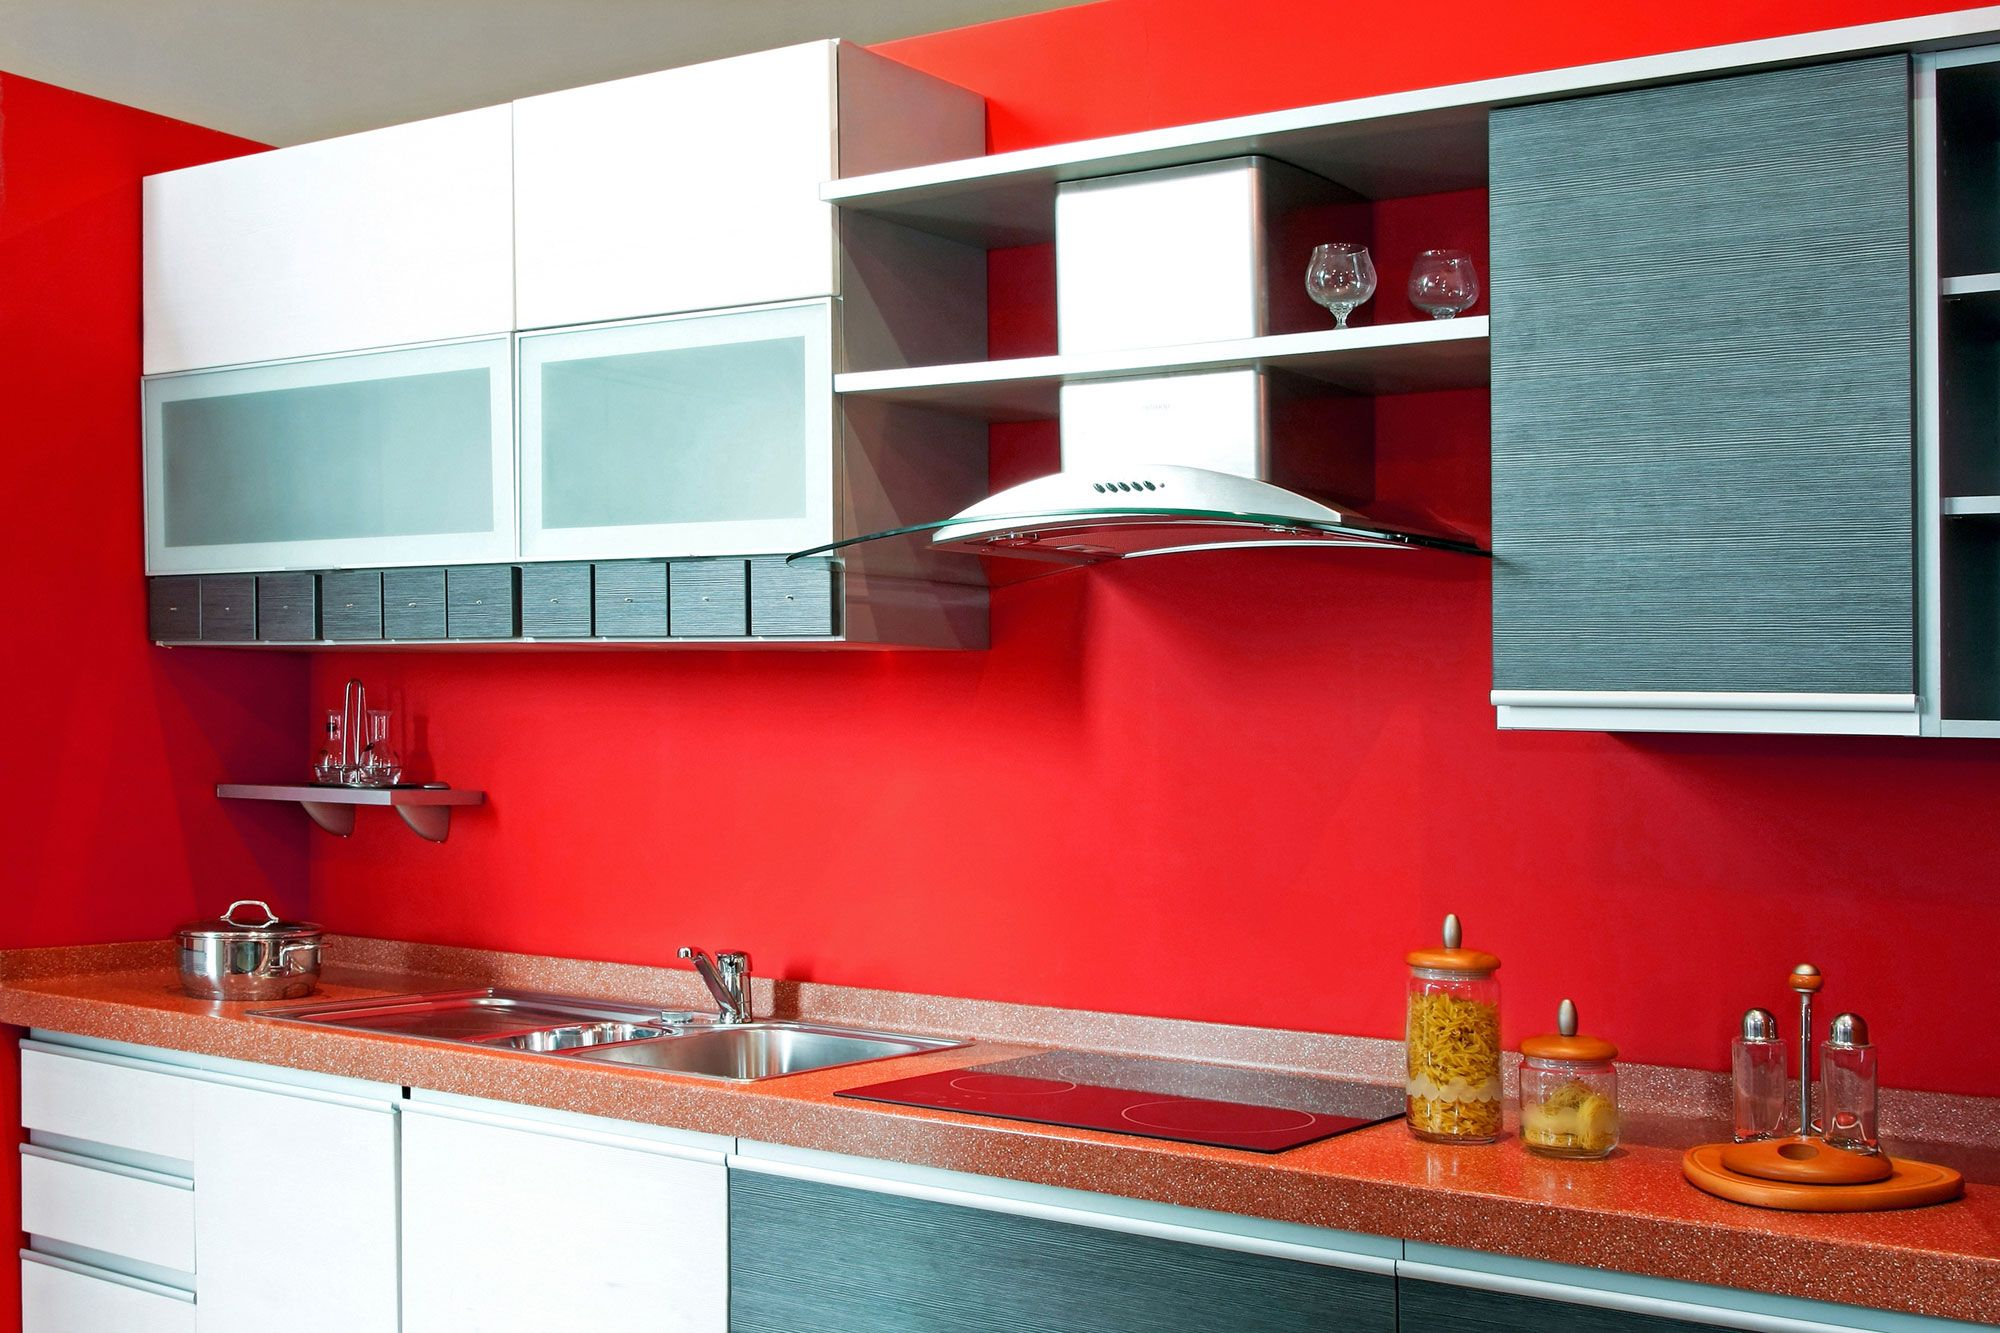 Decoraci n de cocinas en color rojo hogarmania for Decoracion de interiores color rojo